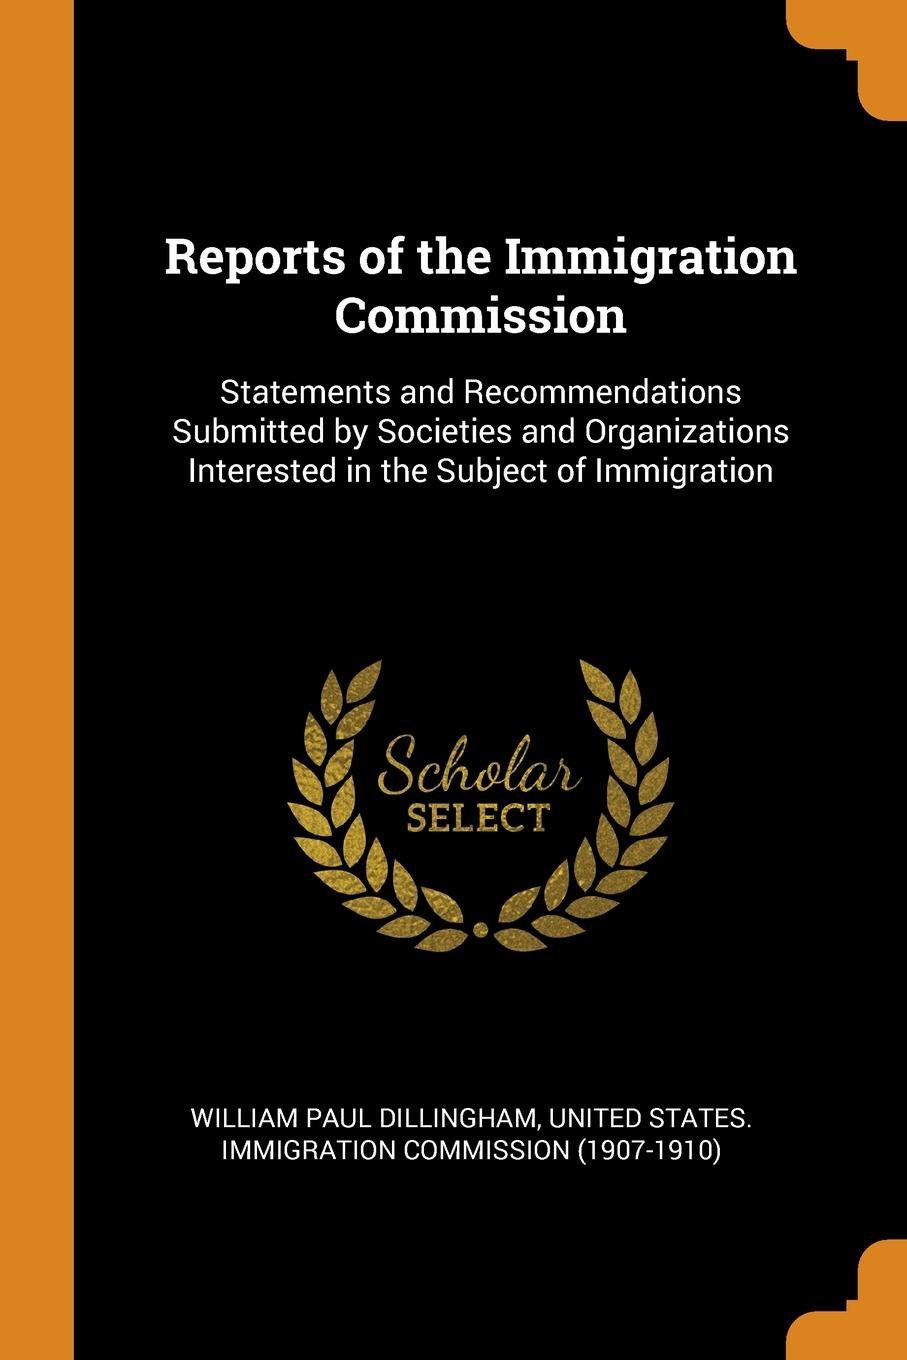 Reports of the Immigration Commission. Statements and Recommendations Submitted by Societies and Organizations Interested in the Subject of Immigration. William Paul Dillingham